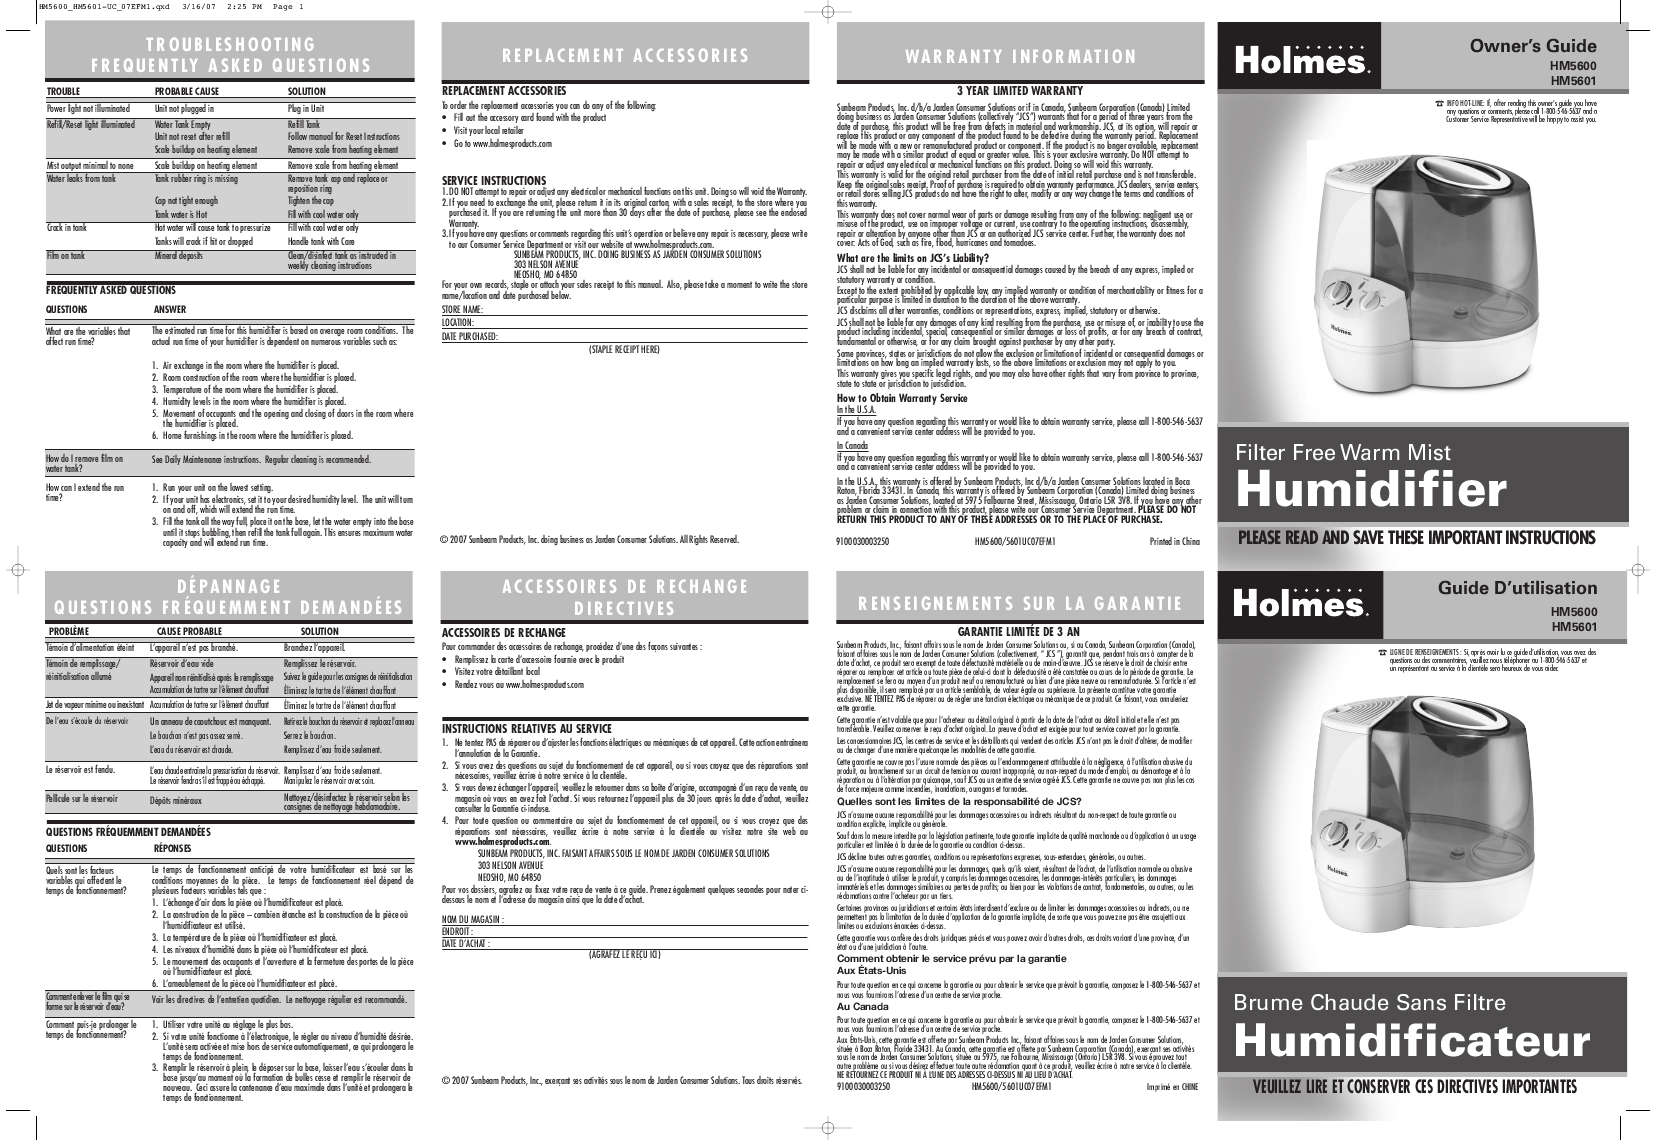 Holmes Humidifier HM5601 User's Guide ManualsOnline.com #413E3F